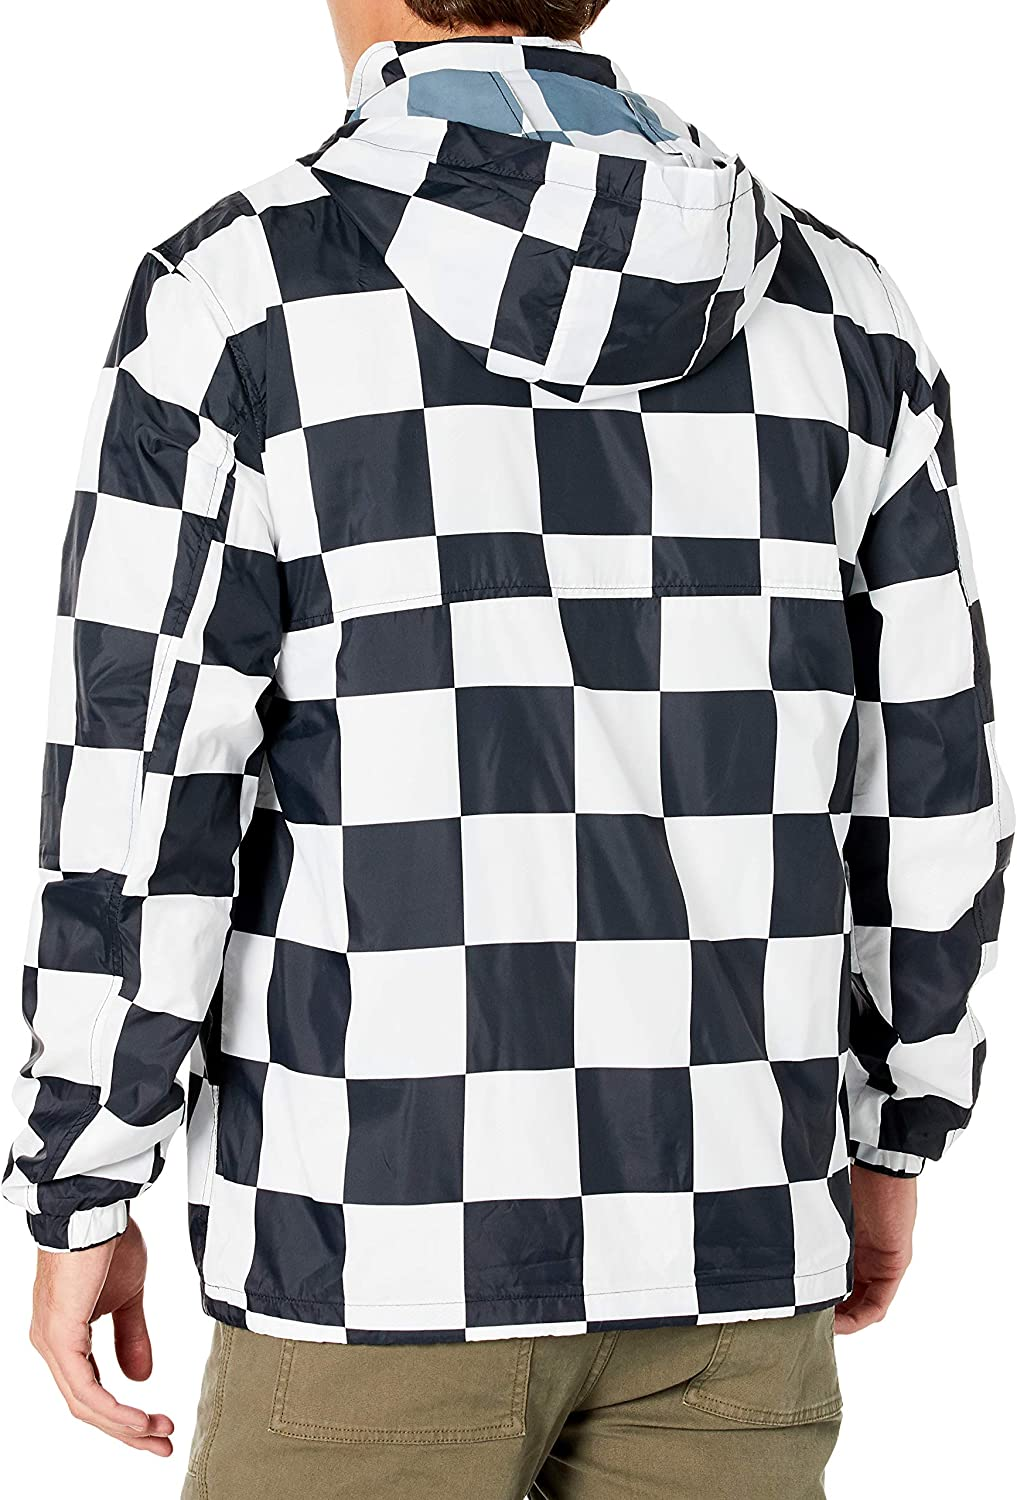 XX-Large Checker Obey Mens Runaround Eyes Pullover Anorak Jacket